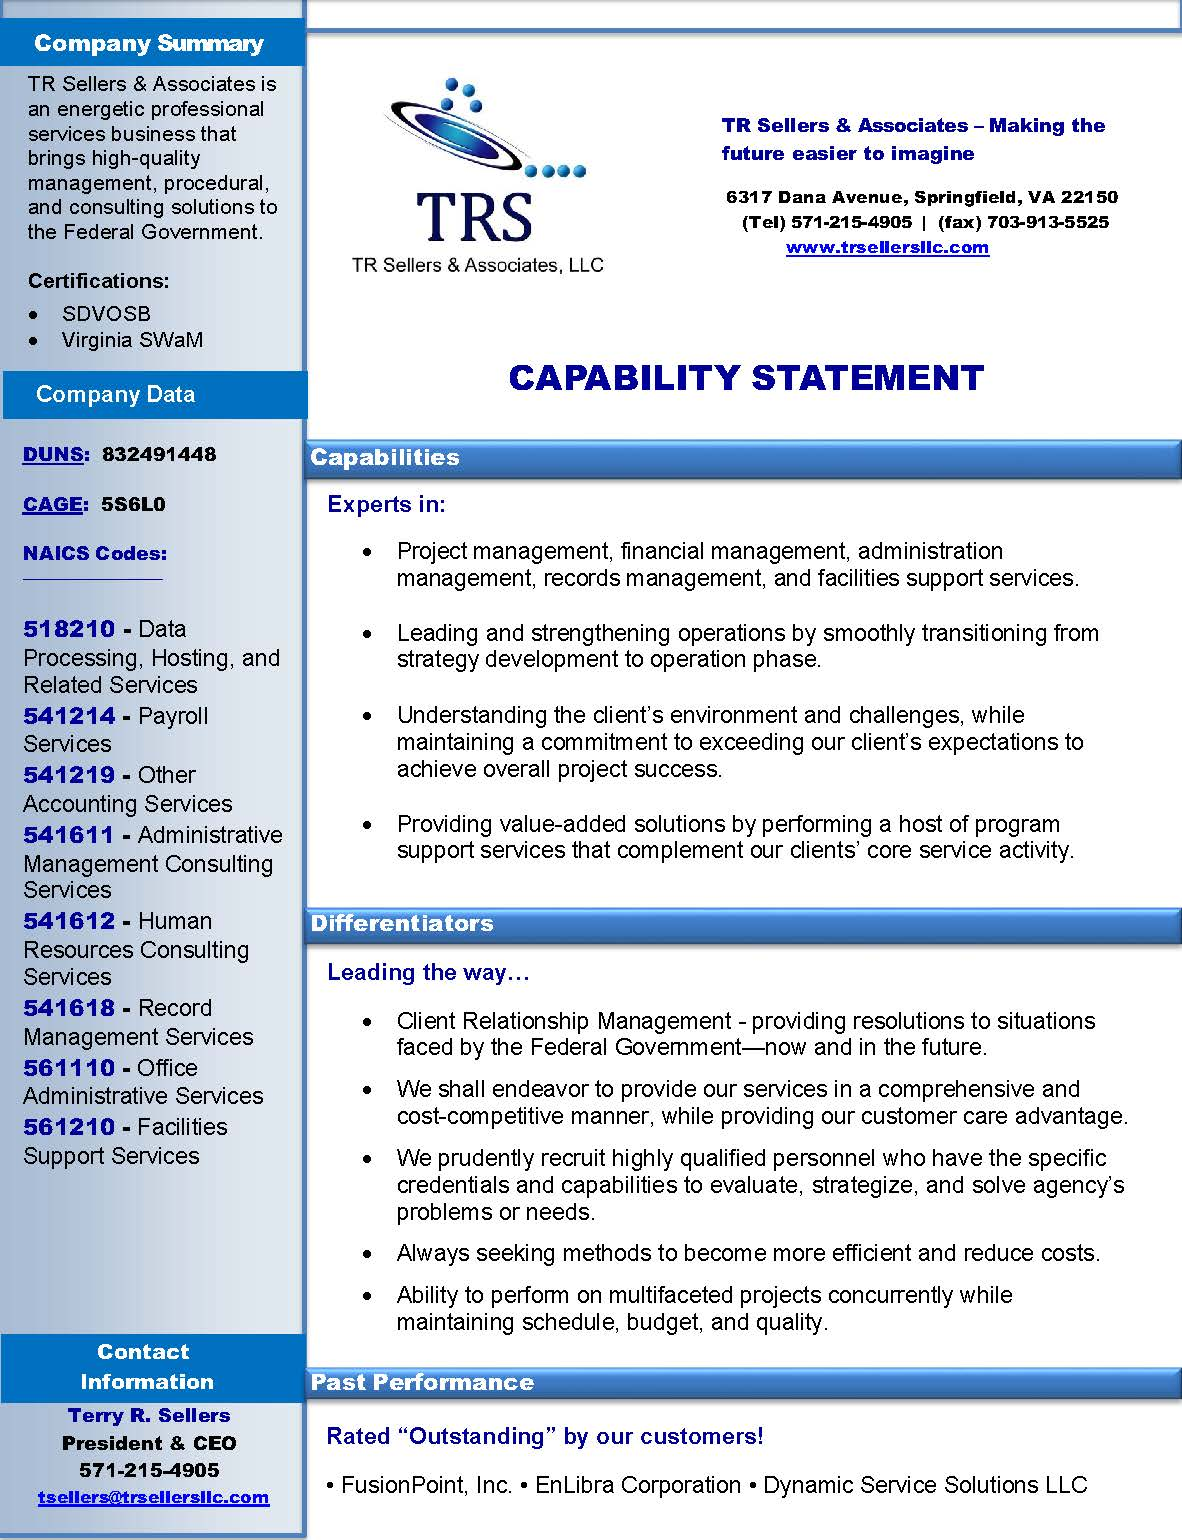 associates llc capability statement home capability statement ...